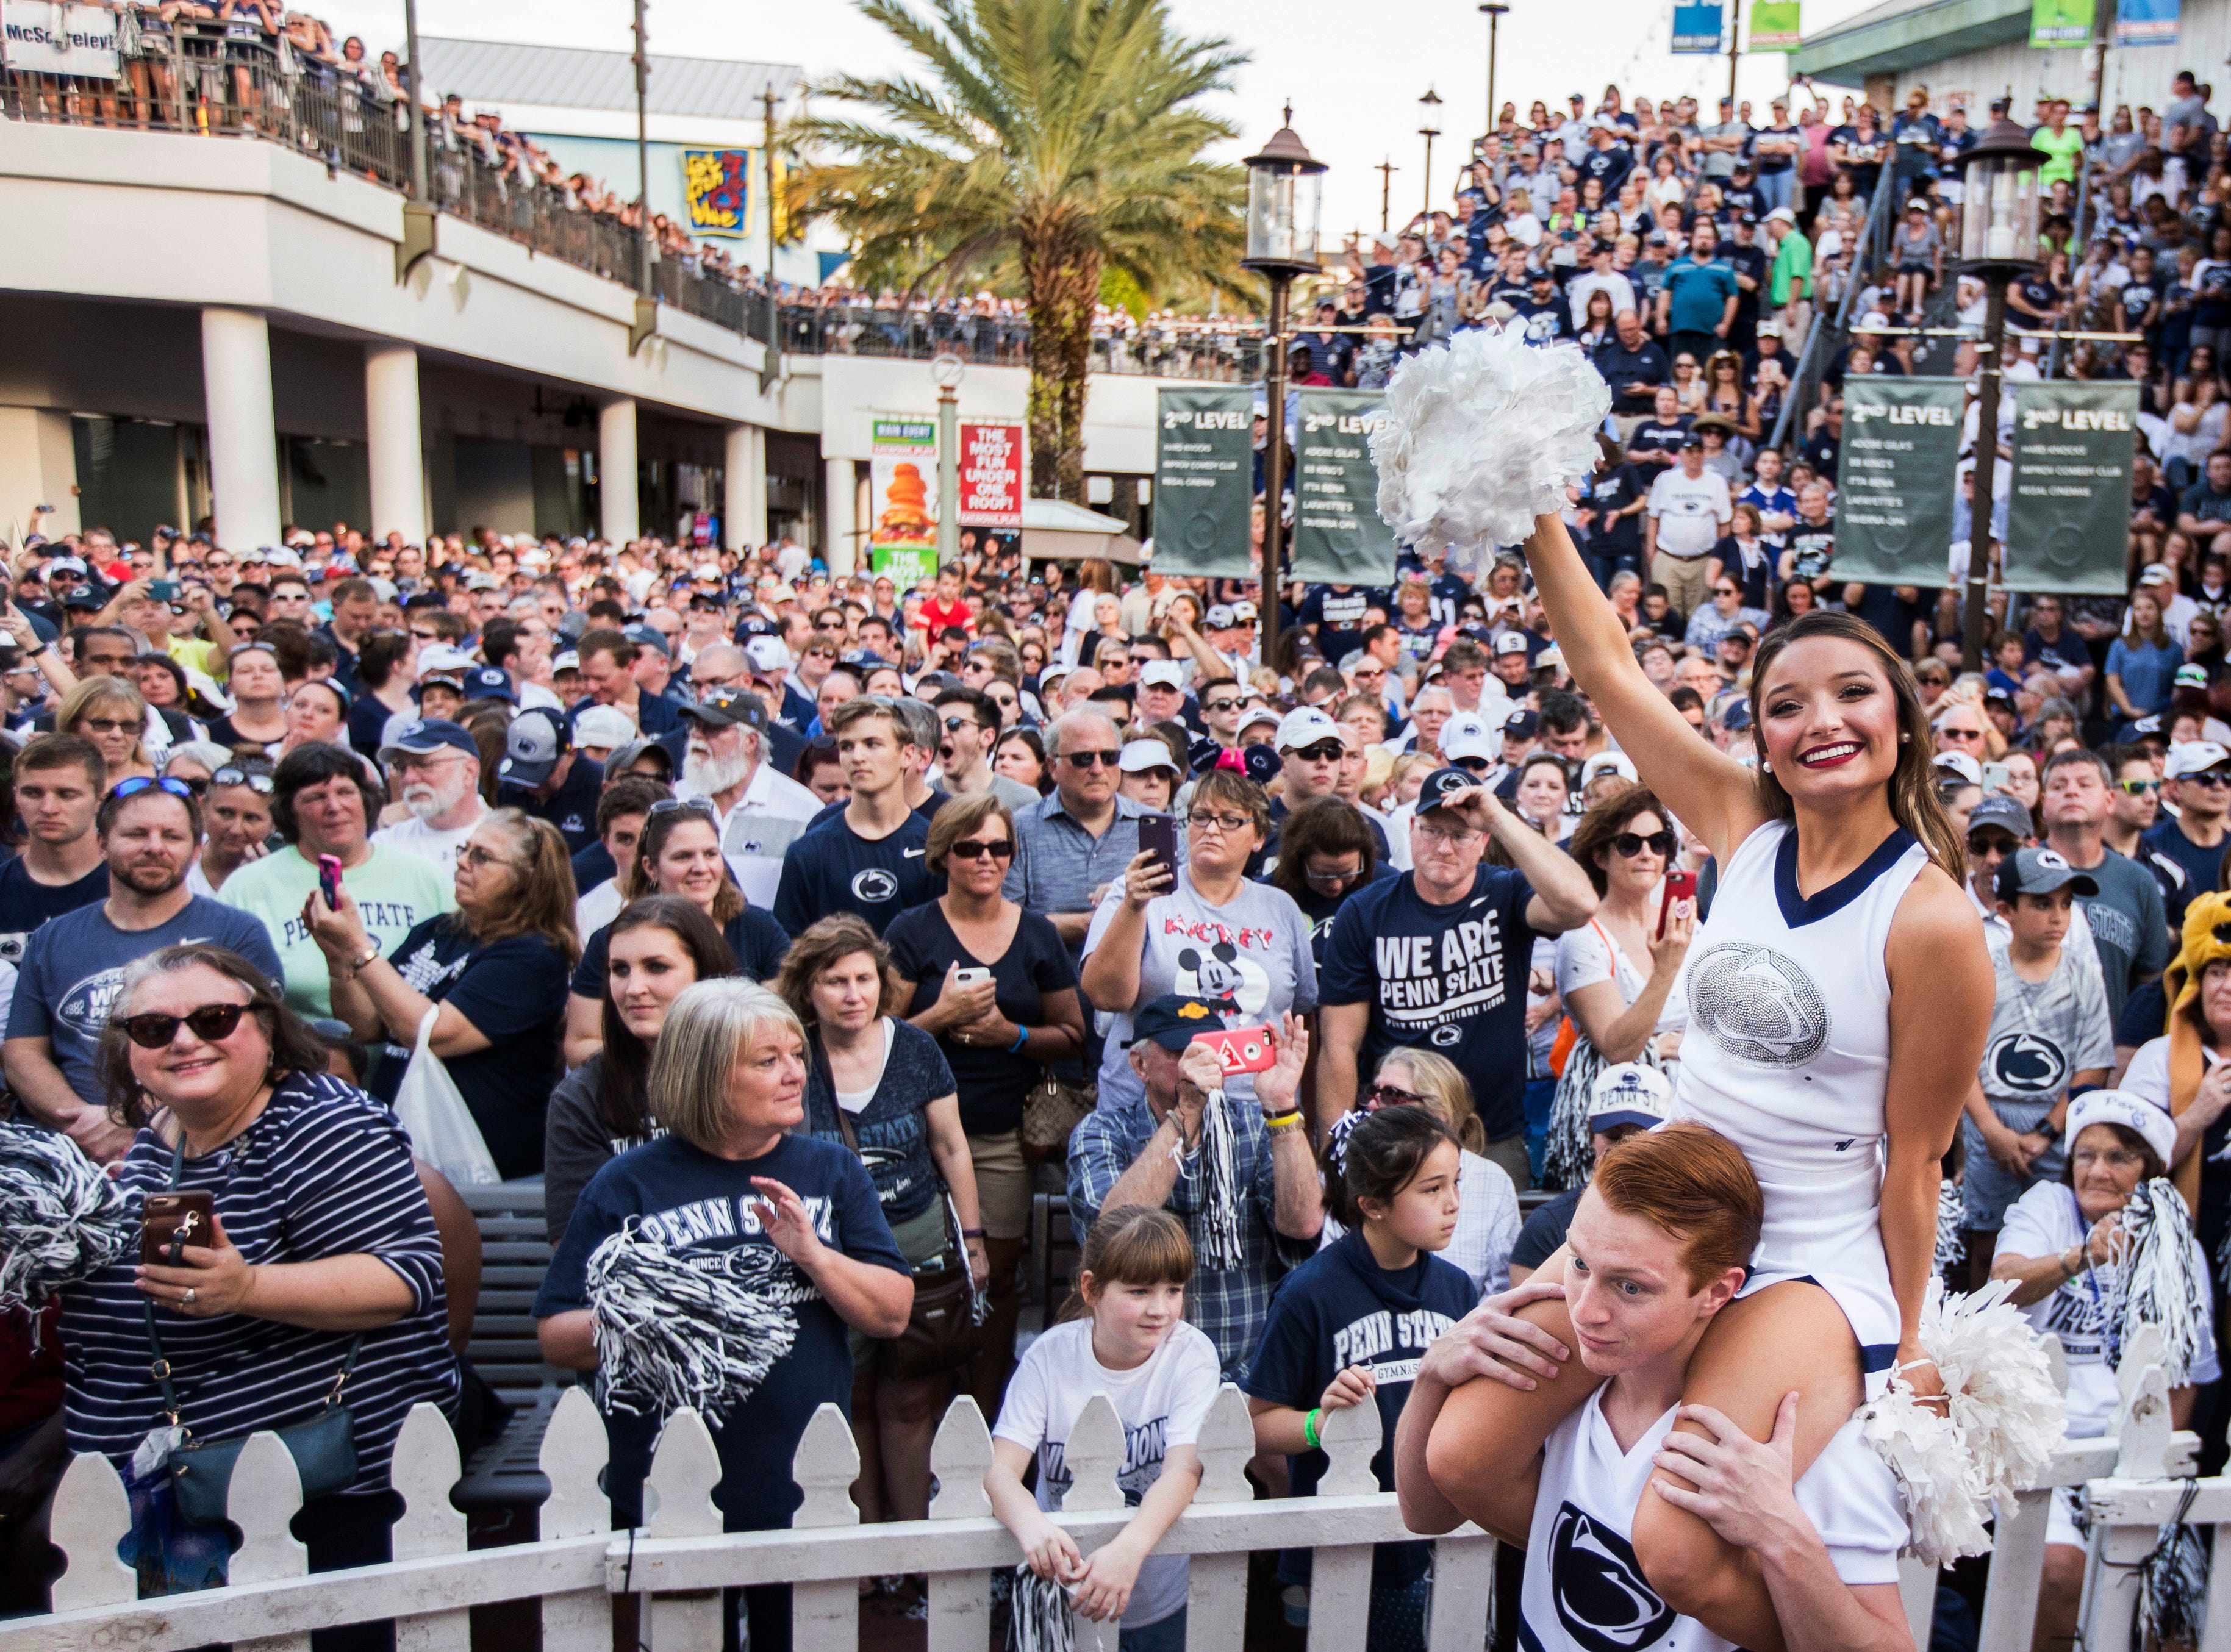 Penn State fans attend the Citrus Bowl college football game pep rally in Orlando, Fla., Monday, Dec. 31, 2018. (Joe Hermitt/The Patriot-News via AP)